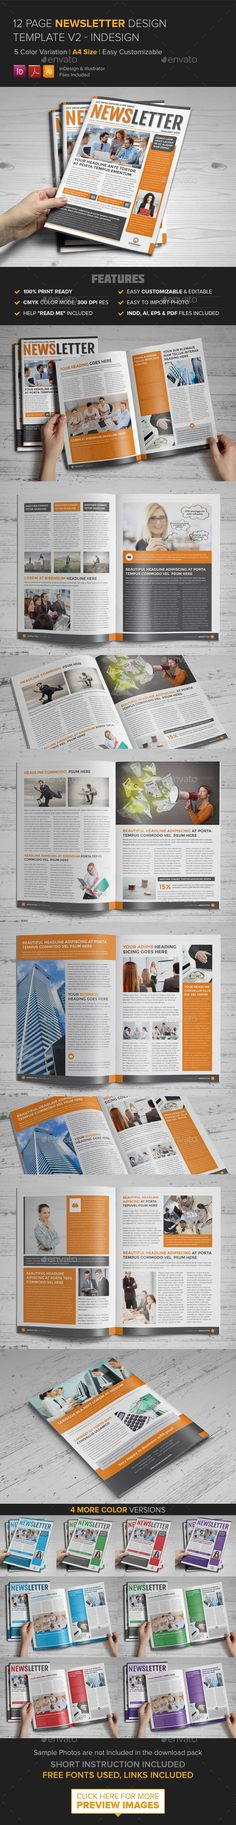 Newsletter Template v2 - InDesign - Newsletters Print Templates